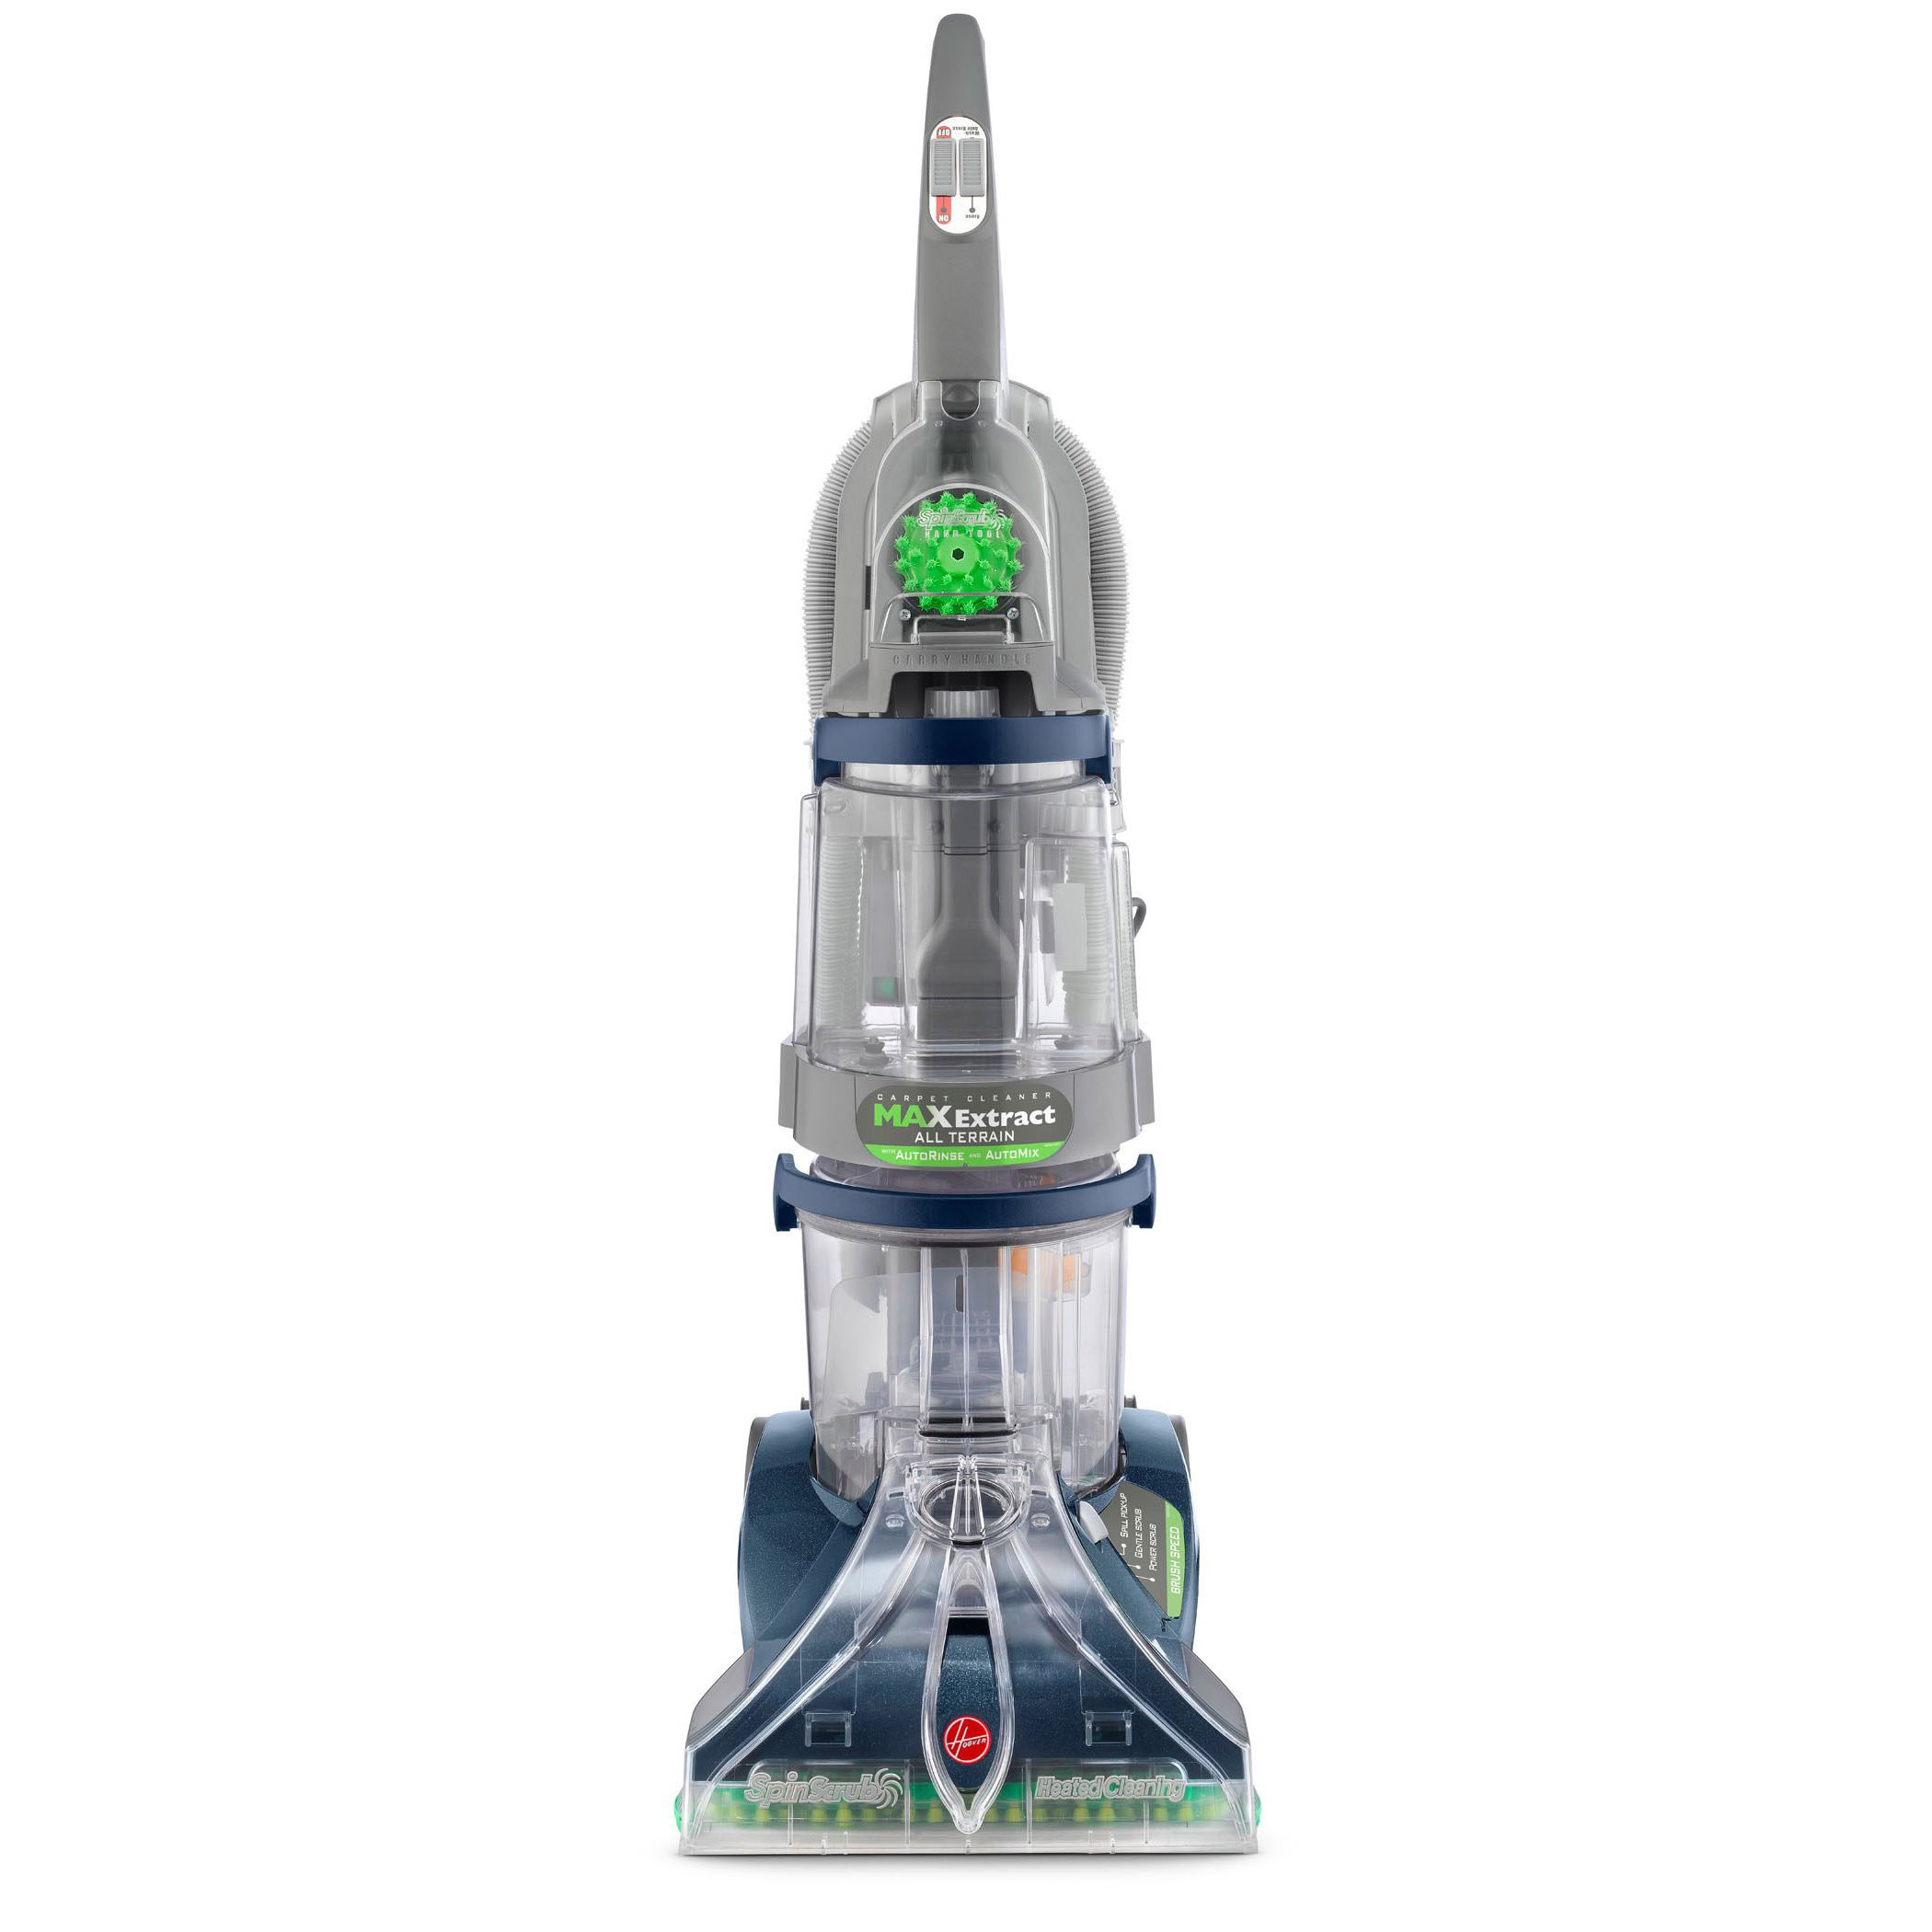 bissell hardwood floor steam cleaner of shop hoover f7452 900 steamvac all terrain 6 brush dual v deep for shop hoover f7452 900 steamvac all terrain 6 brush dual v deep cleaner free shipping today overstock com 3055261